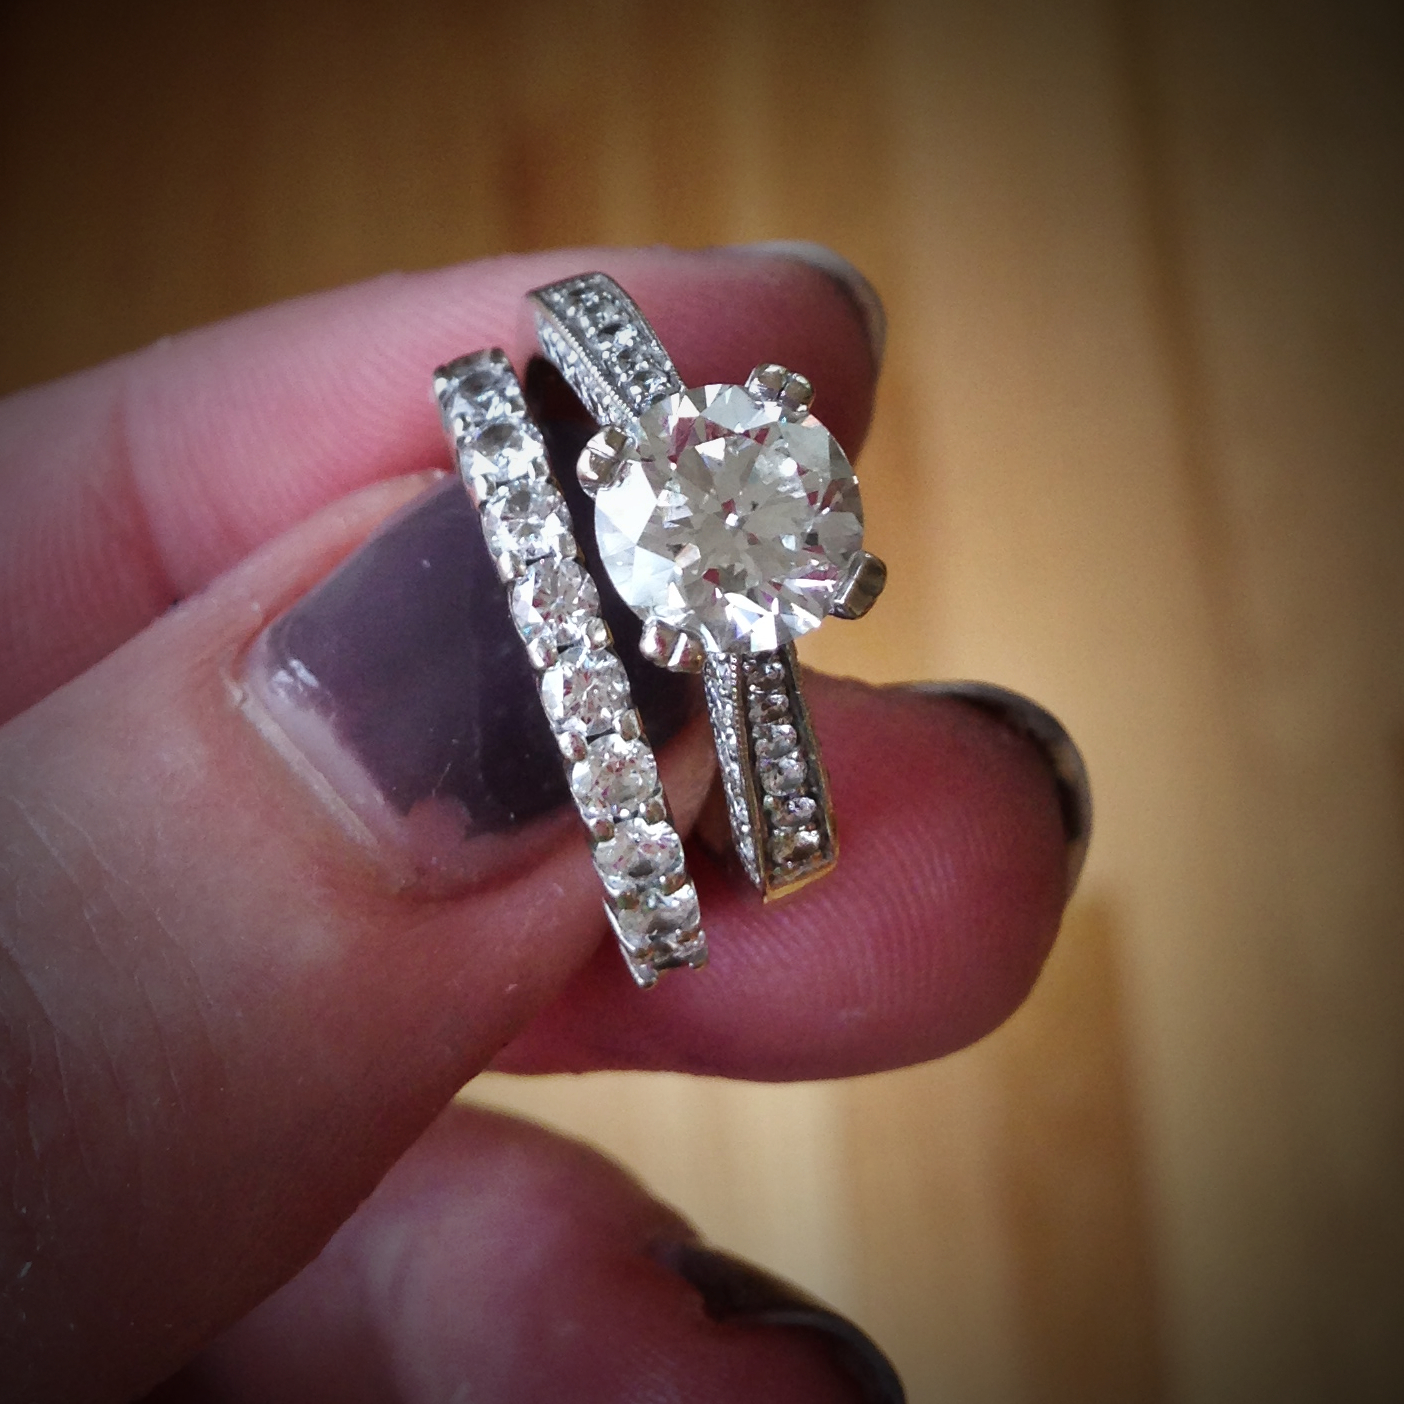 How To Get Rid Of A Rash Under Your Wedding Rings | These Little Moments